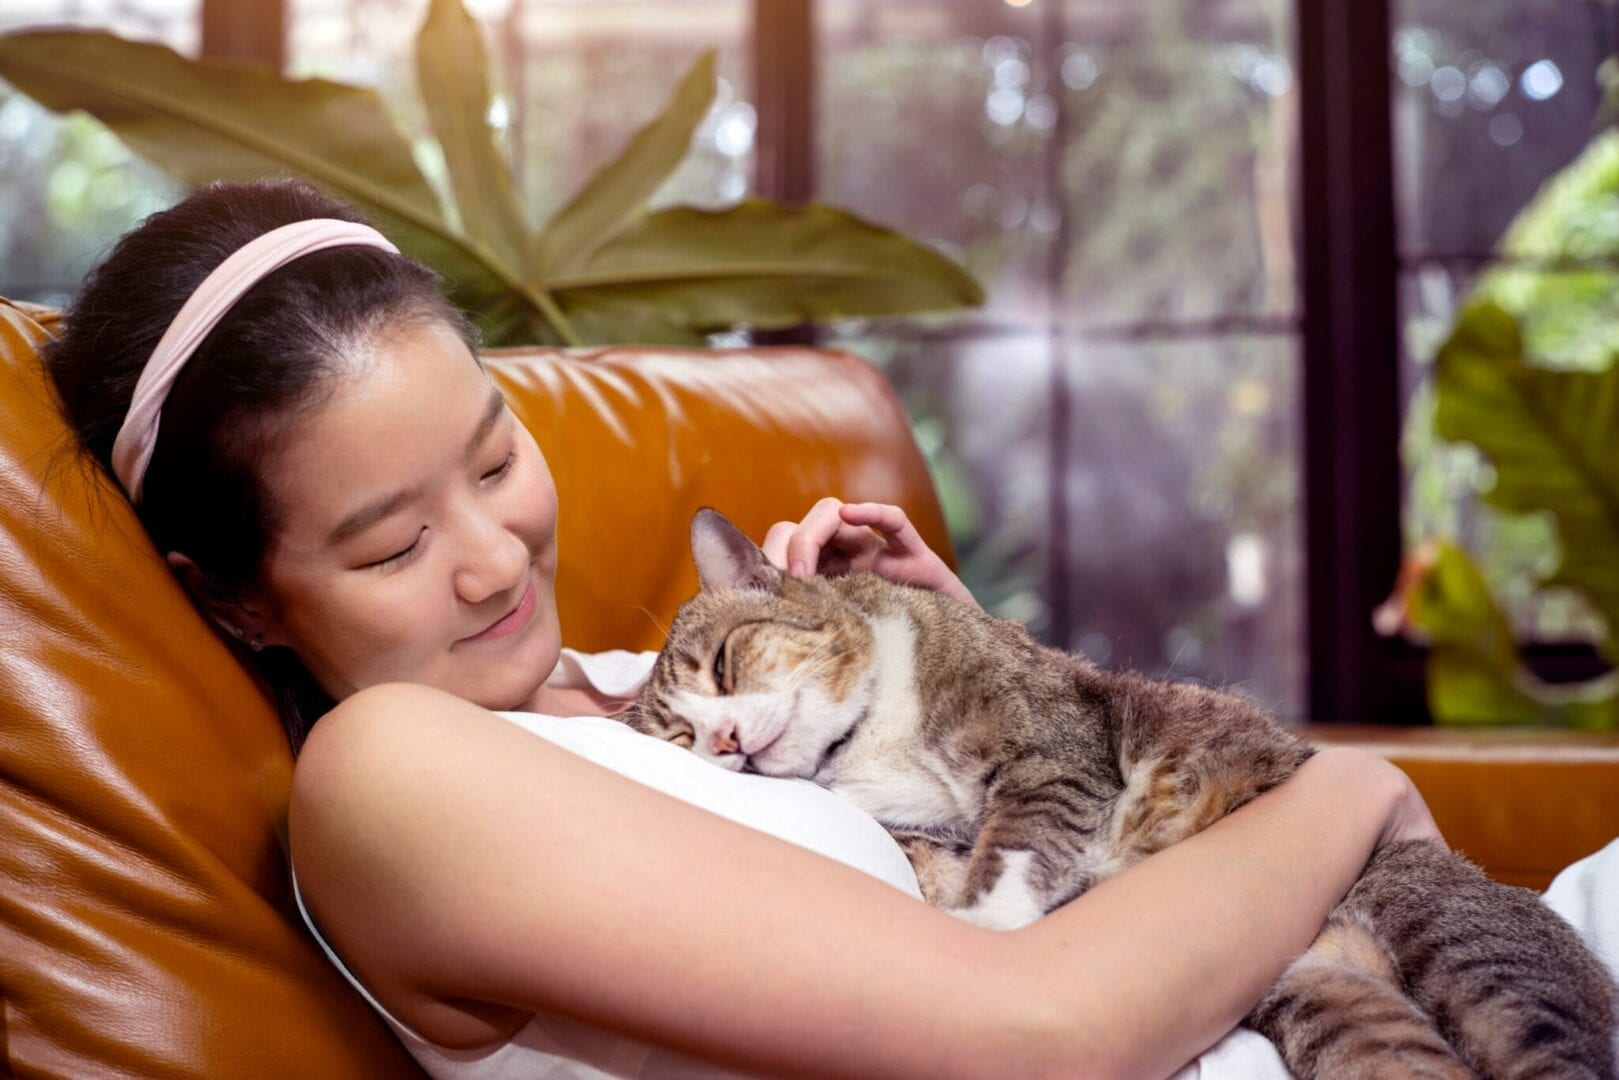 what emotions can cats experience?